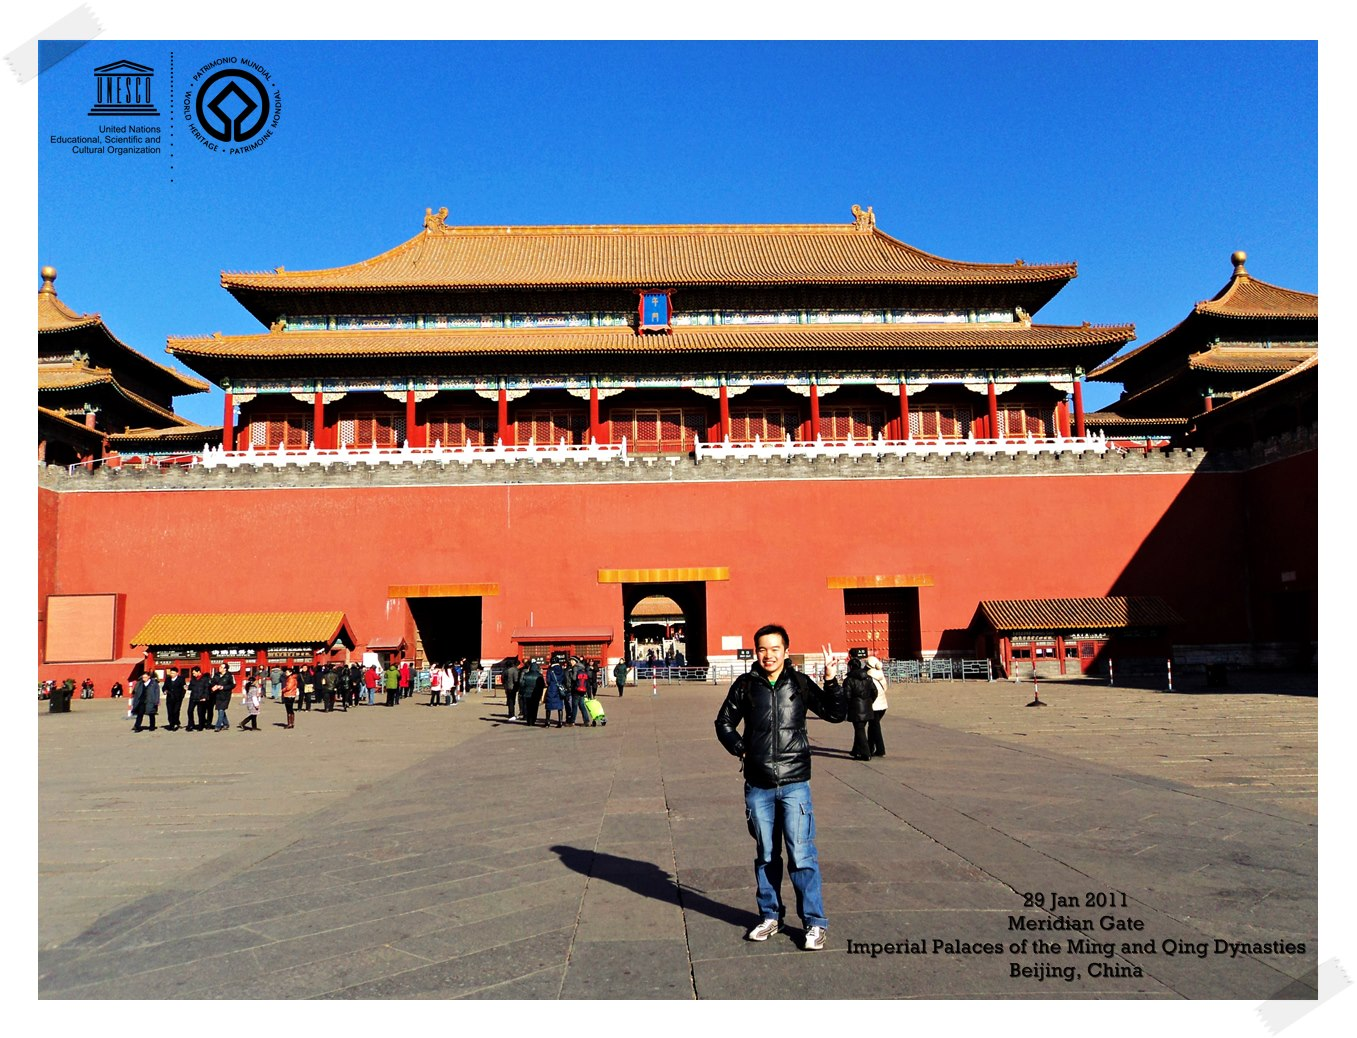 The Meridian Gate Imperial Palaces of the Ming and Qing Dynasties in Beijing and Shenyang - China Thomas shaw